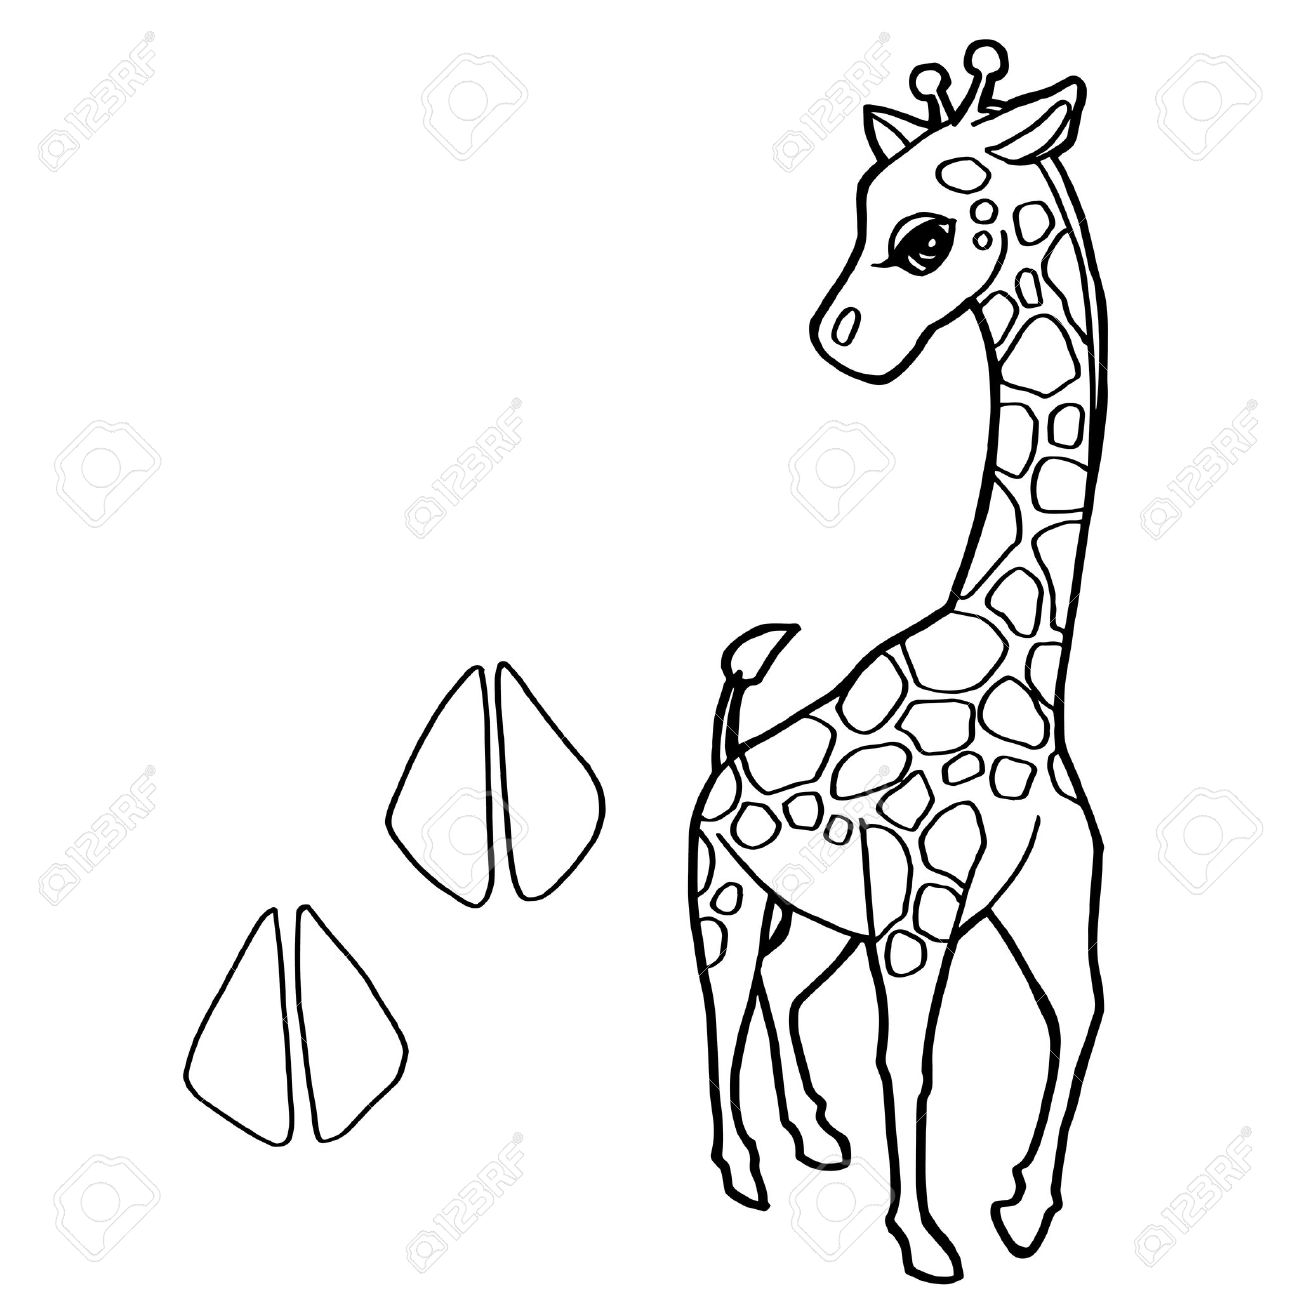 Paw Print With Giraffe Coloring Pages Vector Stock